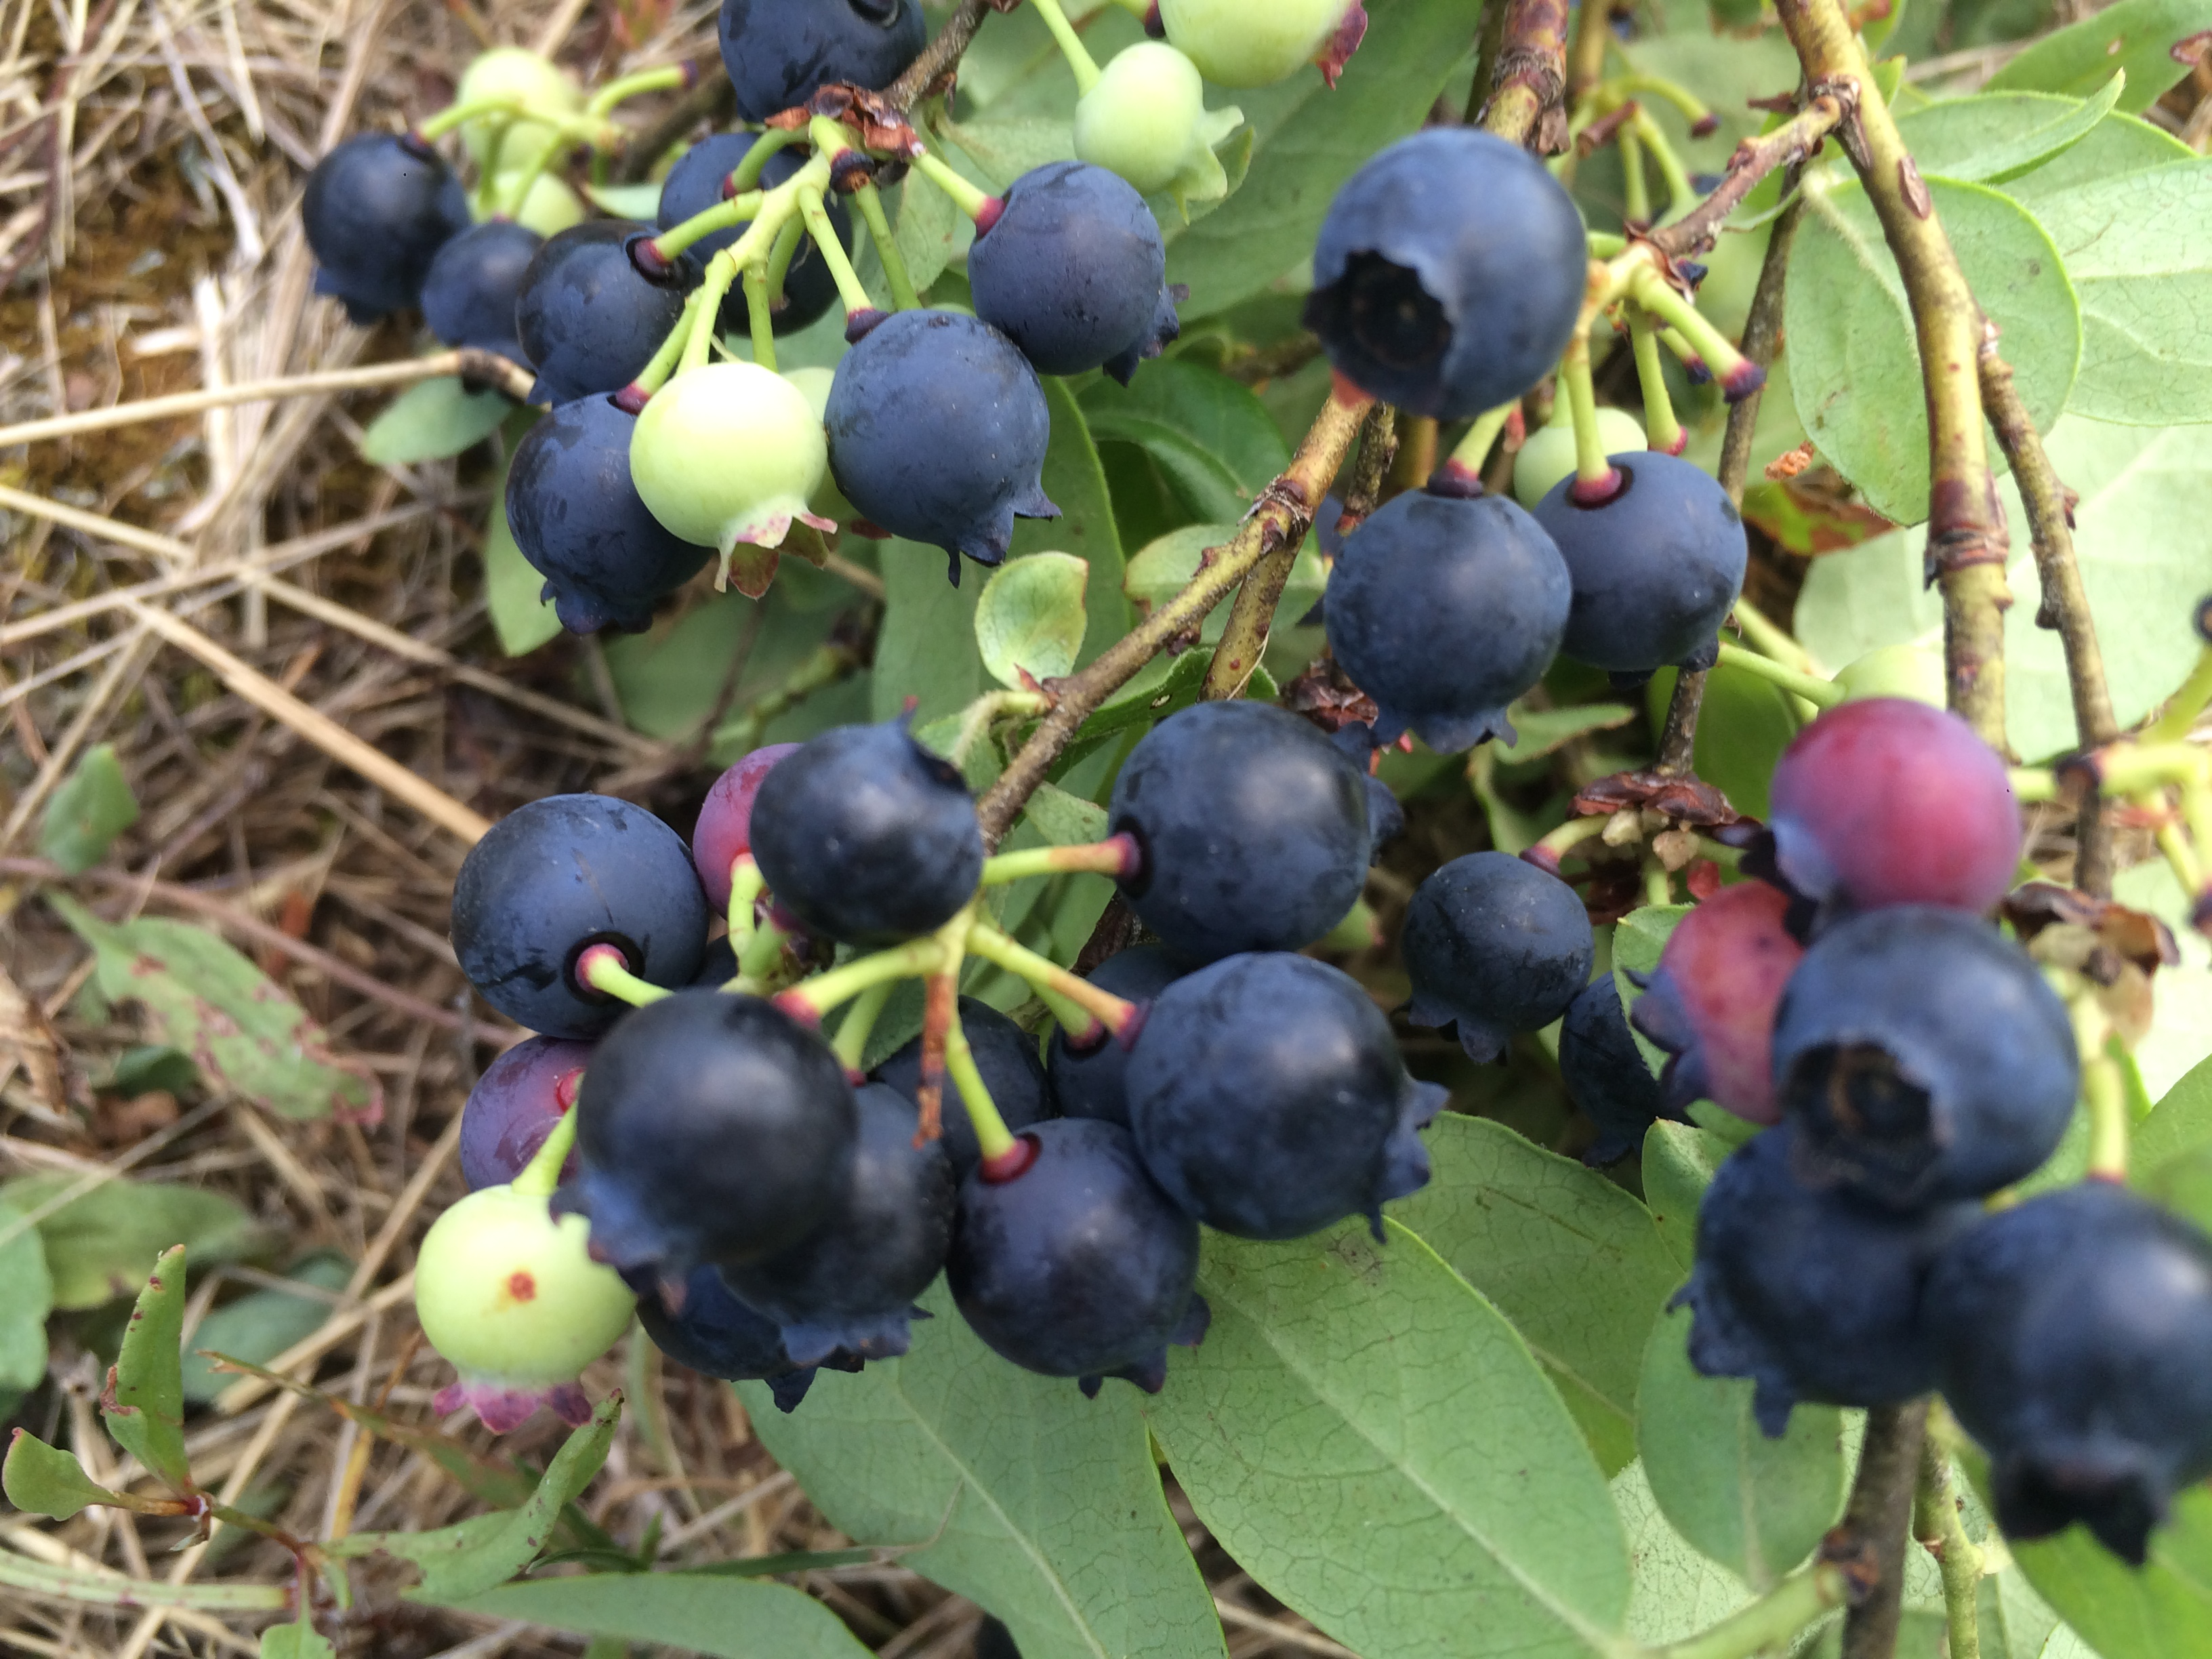 Deep blue color of the wild blueberries is an indication of their intense flavor.